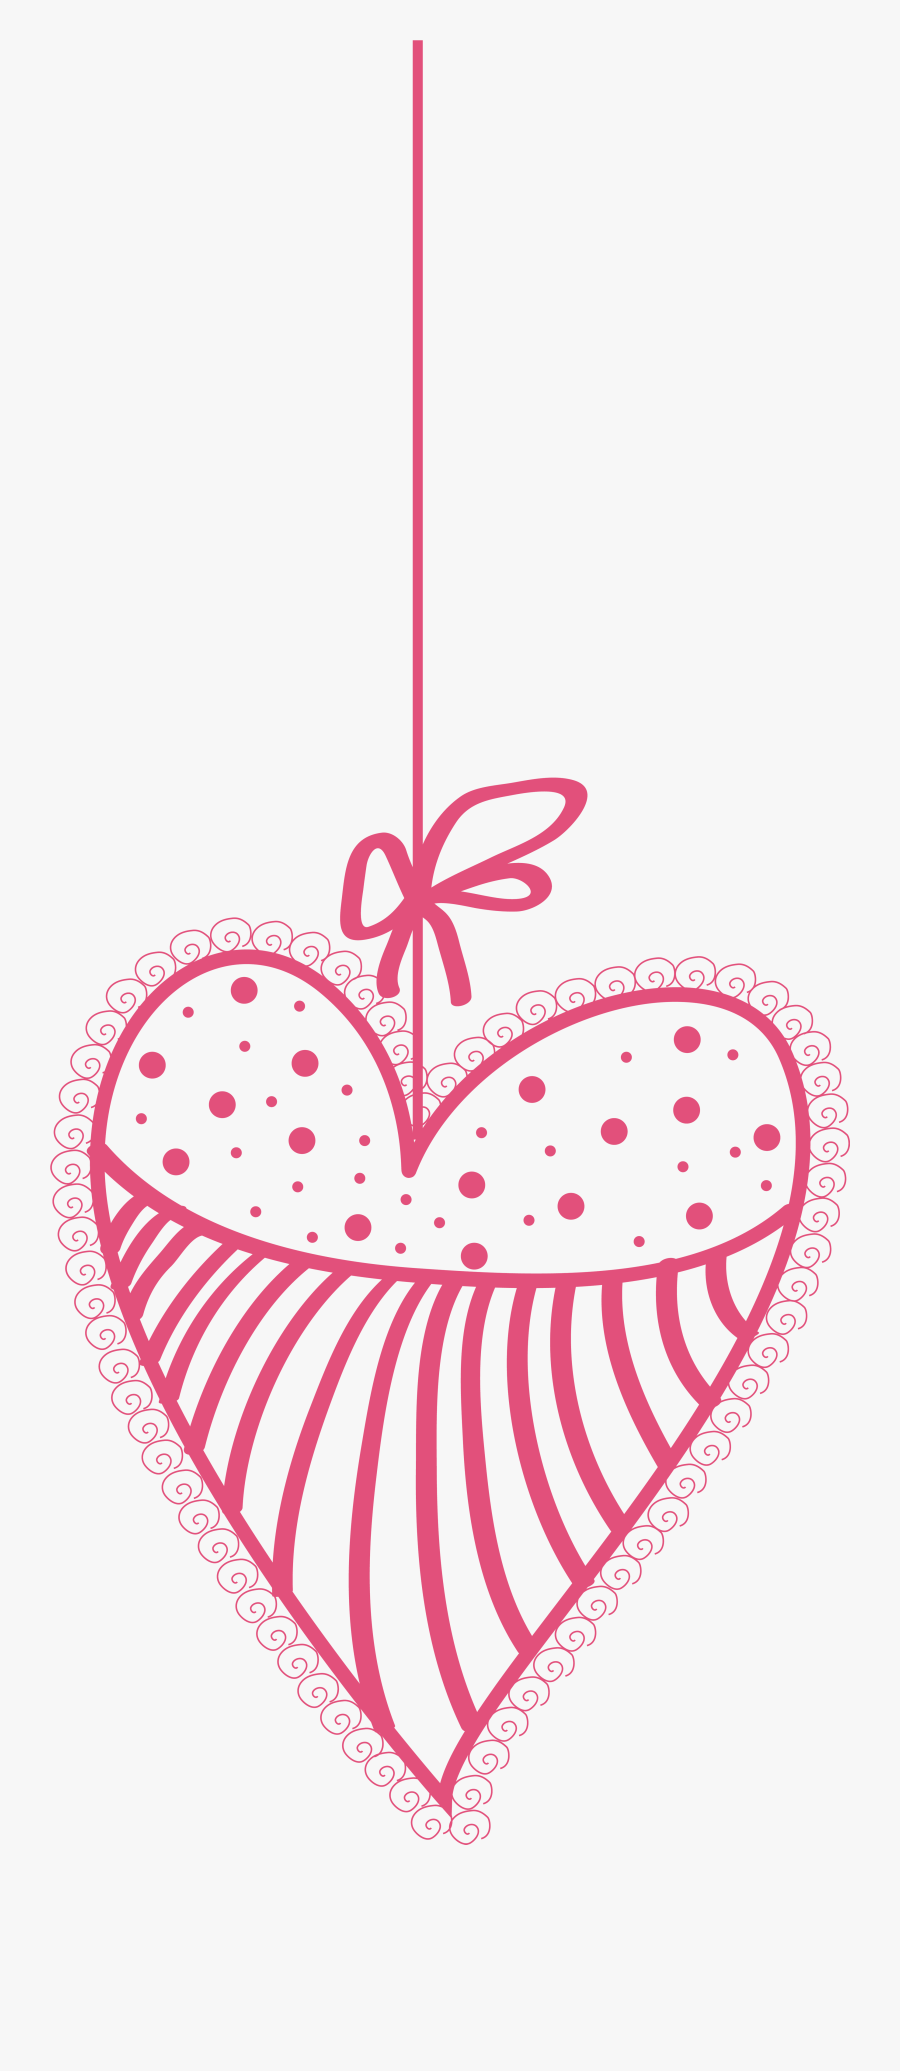 Decorative Heart Transparent Png Clip Art Image - Heart, Transparent Clipart